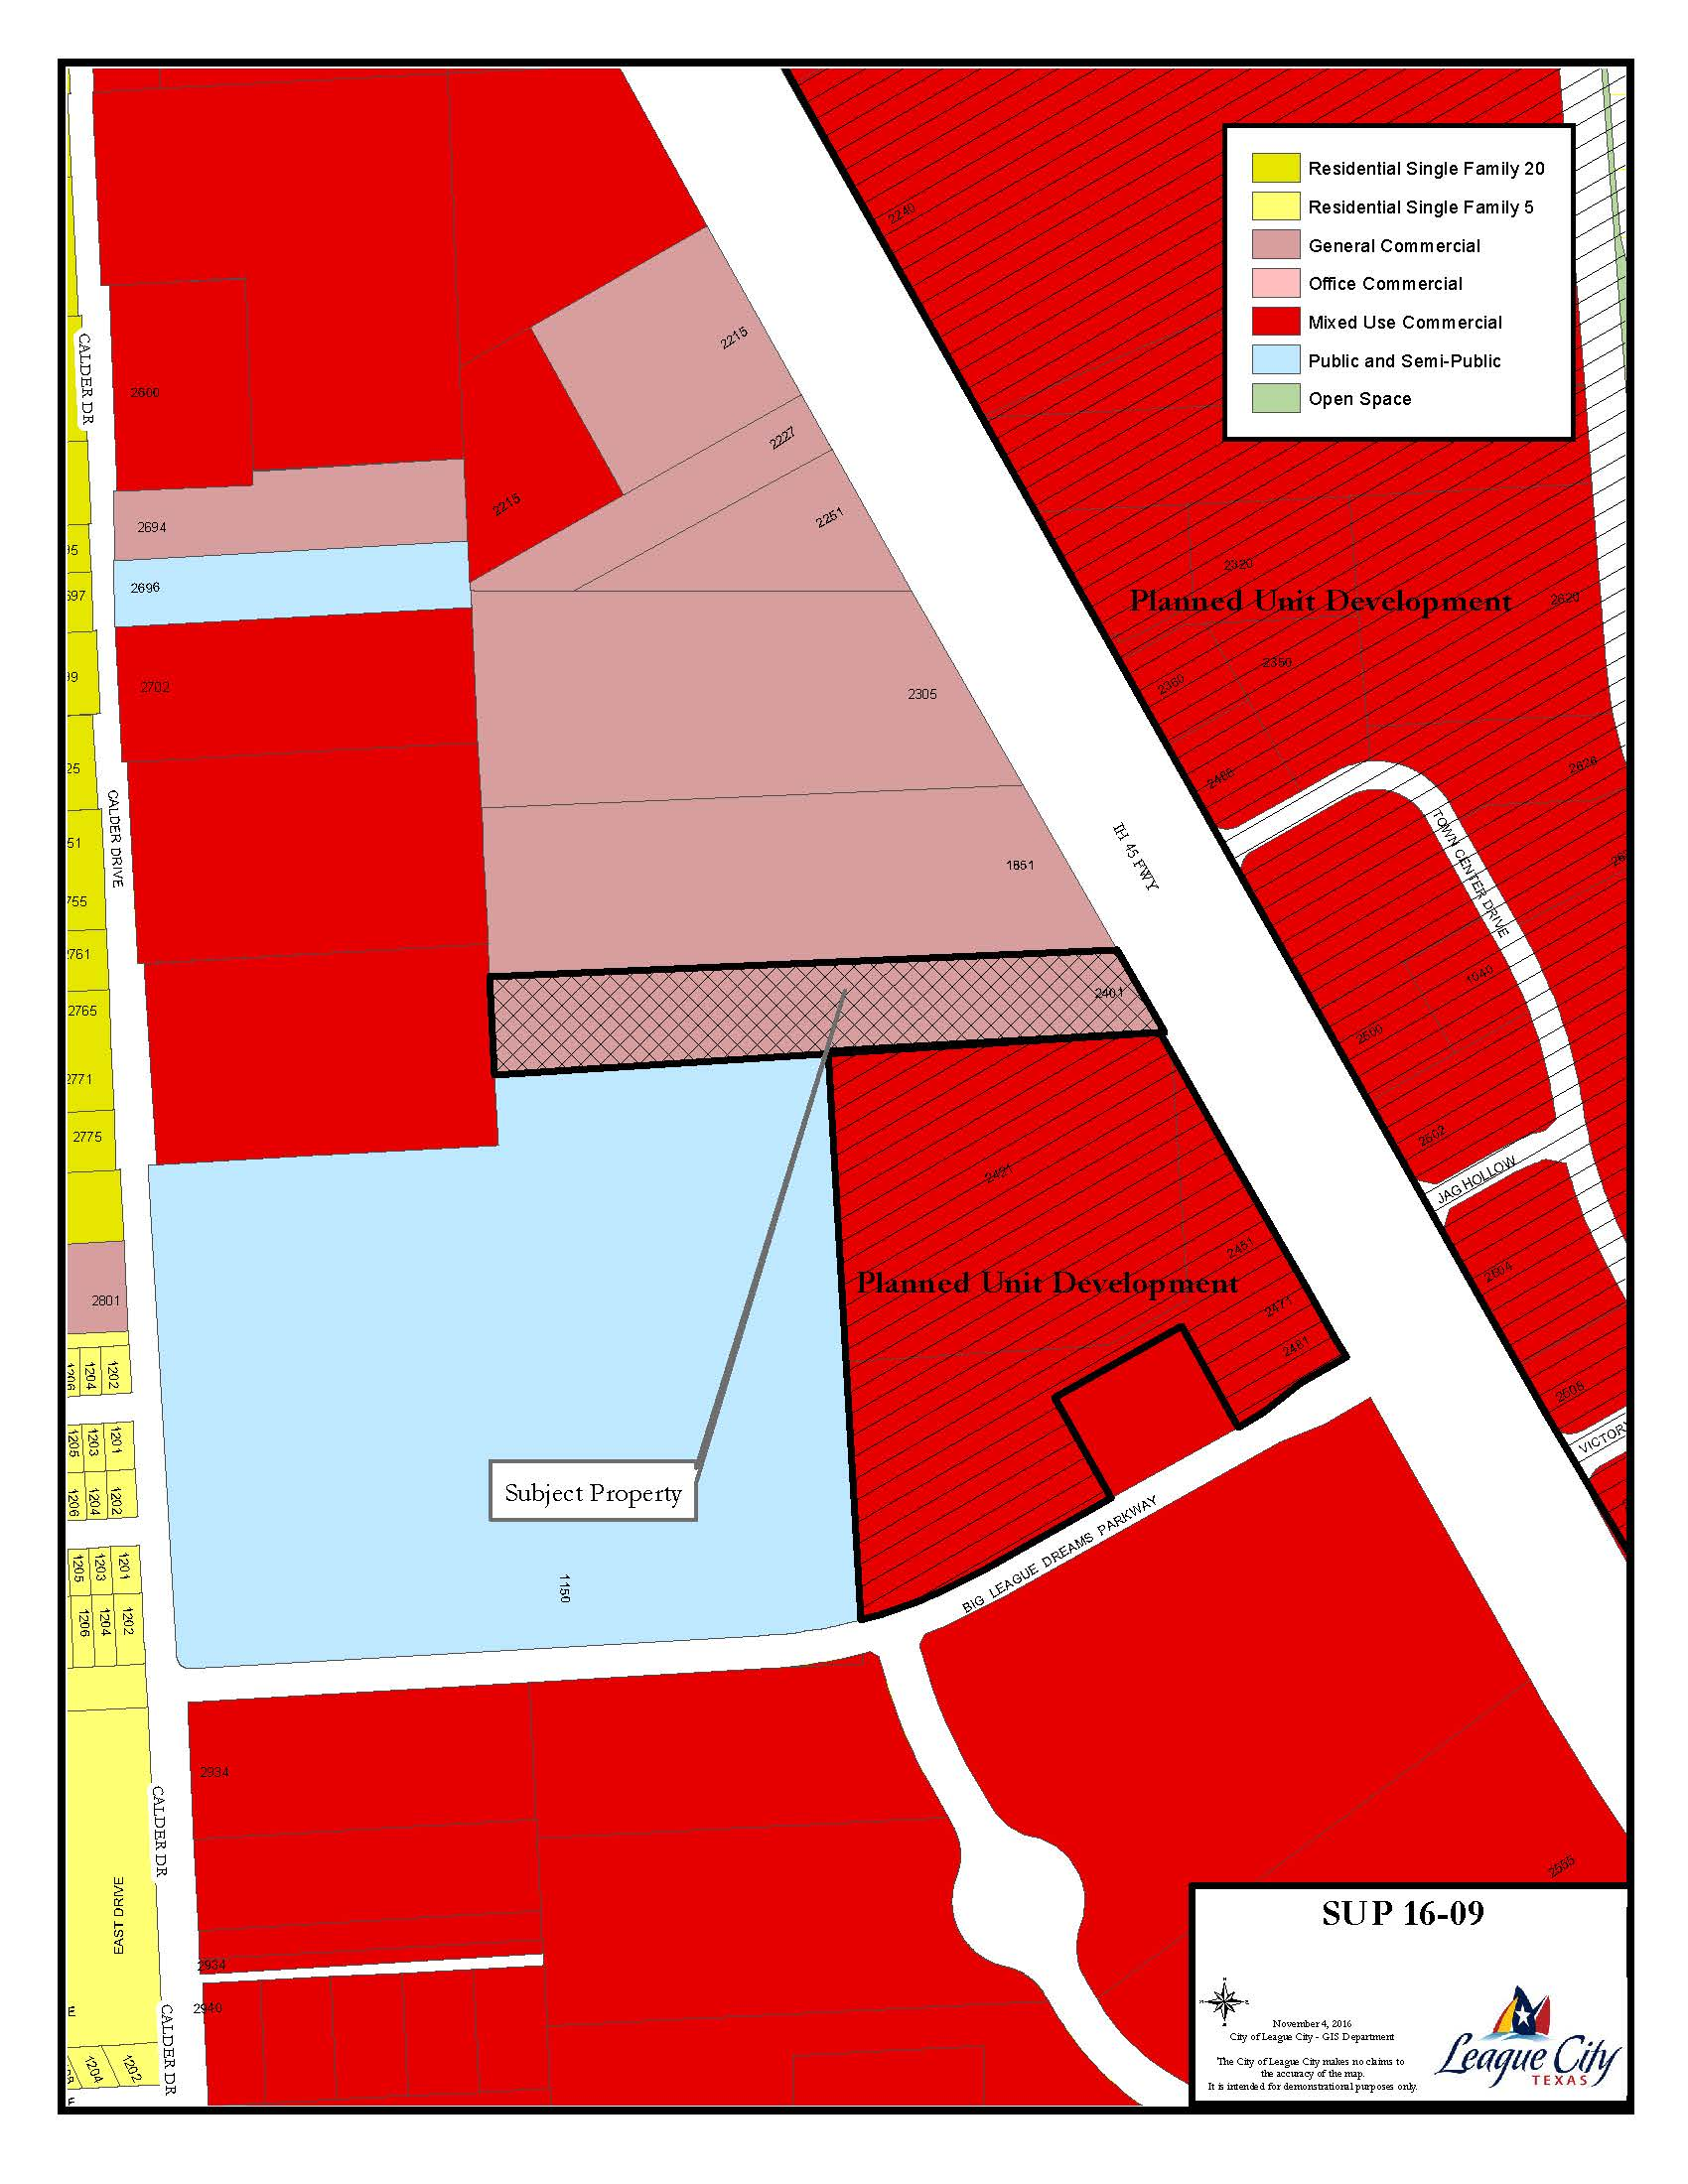 SUP16-09 (Joe Hudson Collision Center) zoning map